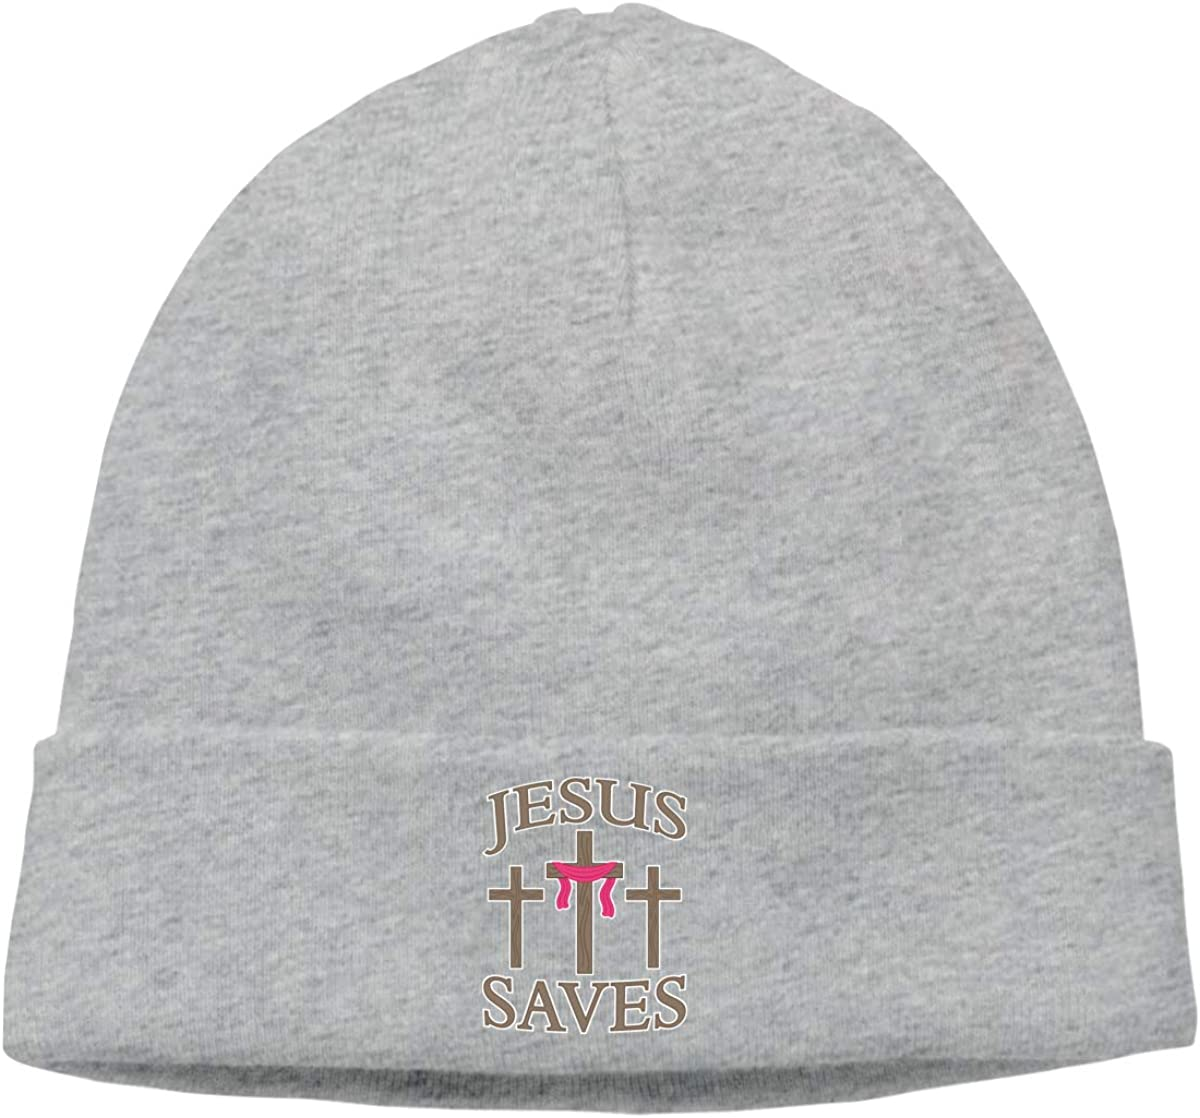 Jesus Cross Save Skull Hat Beanie Caps for Mens Gray